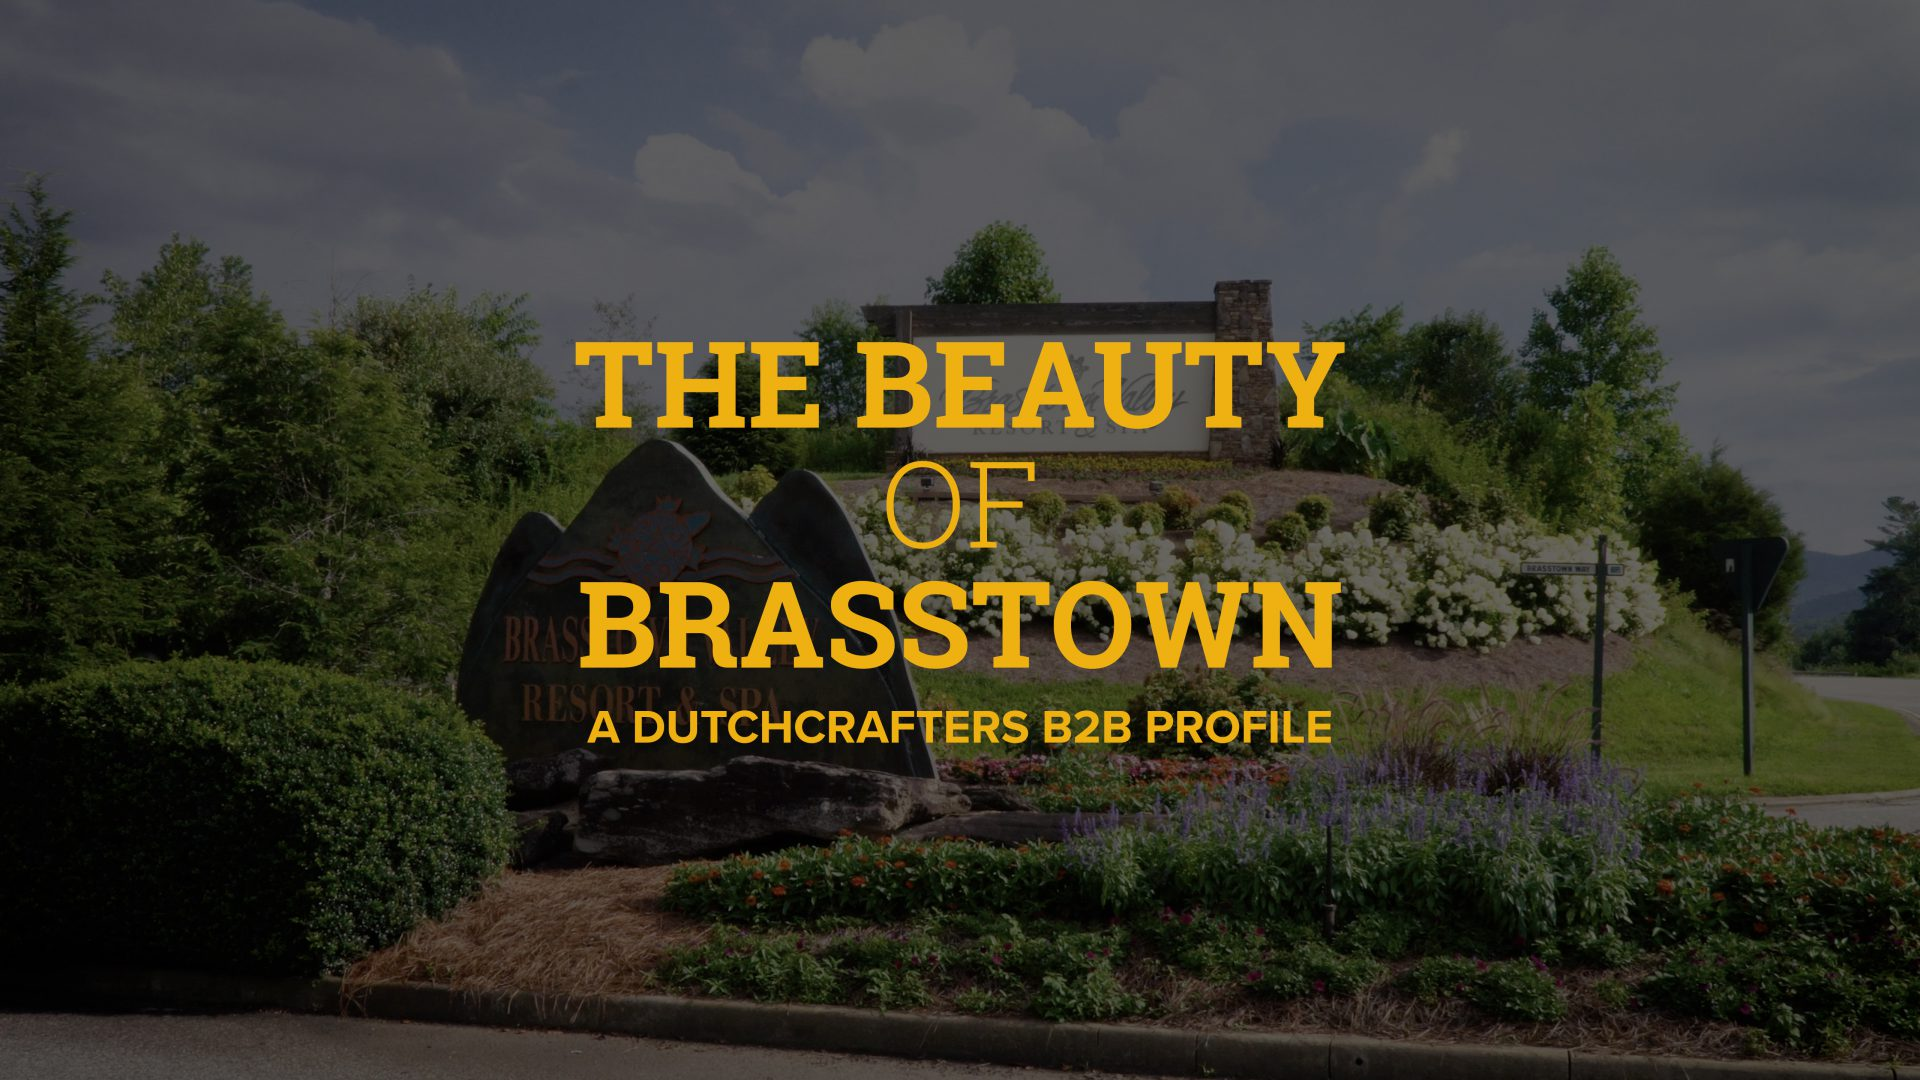 Brasstown: A DutchCrafters B2B Customer